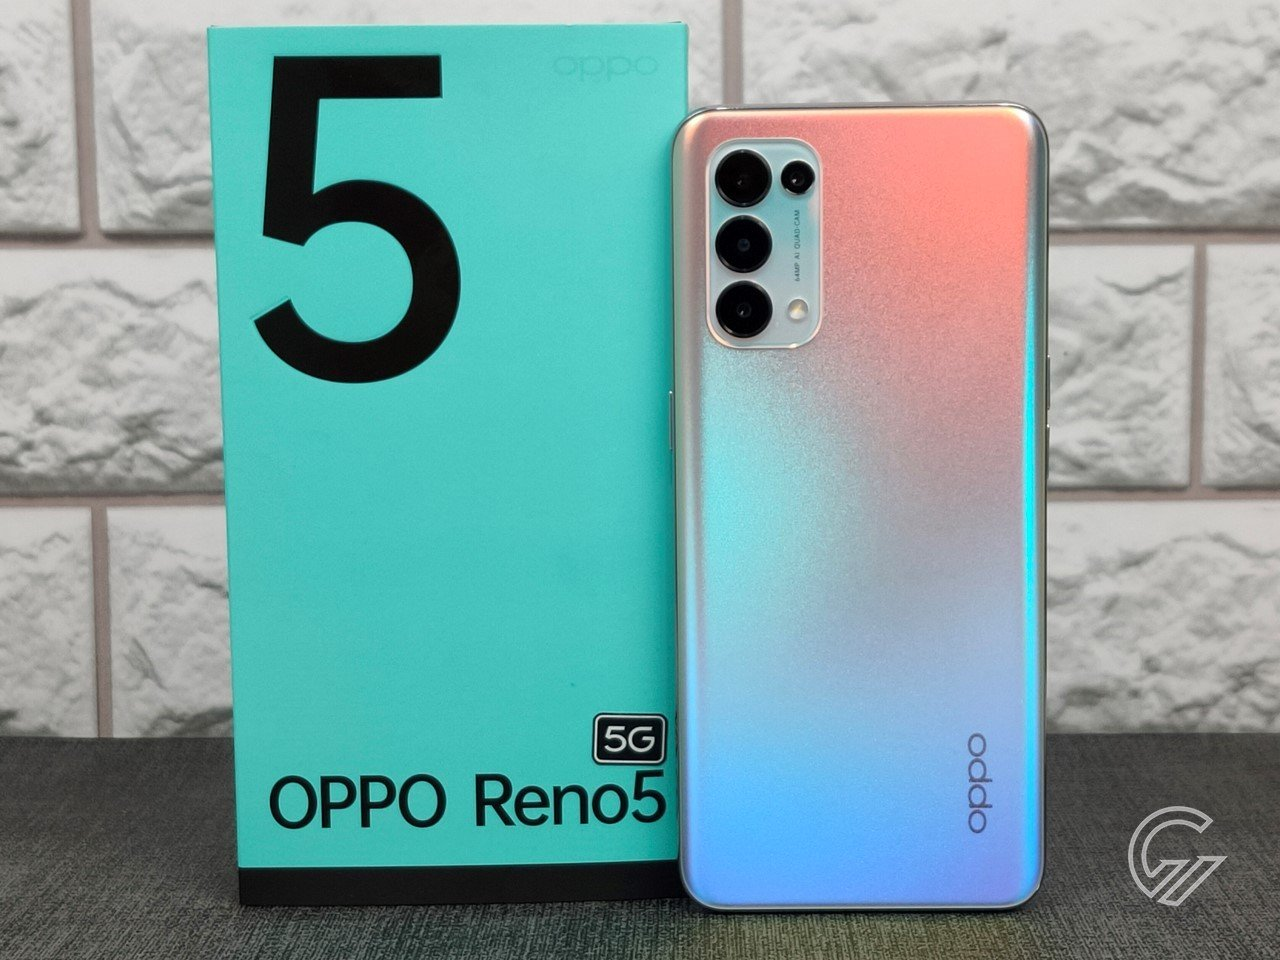 OPPO Reno5 5G Feature Vertical